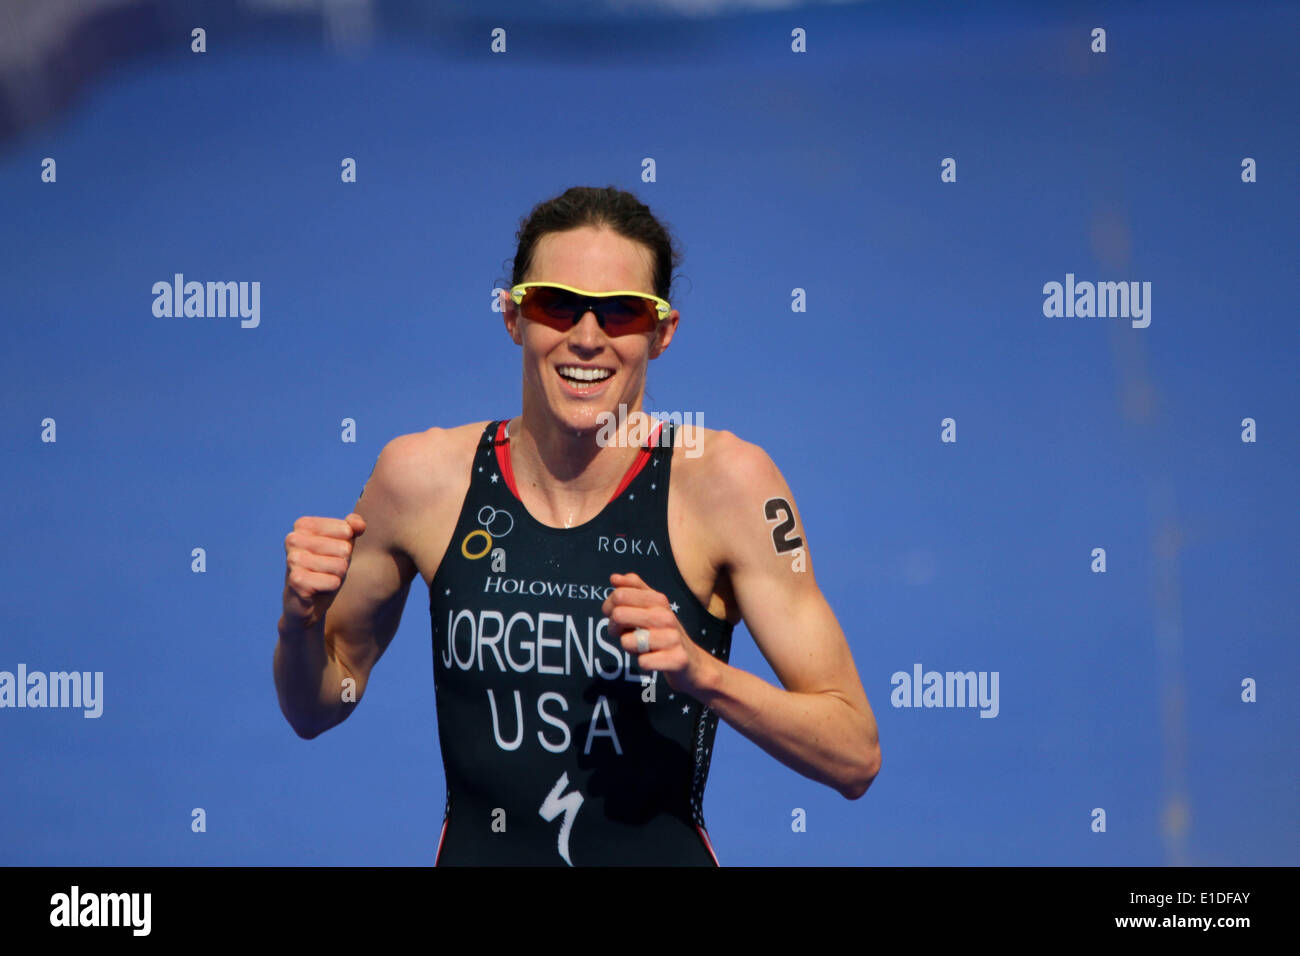 London, UK. 31st May, 2014. Gwen Jorgensen of USA wins the women elite ITU Triathlon held in London. Credit:  petericardo Stock Photo